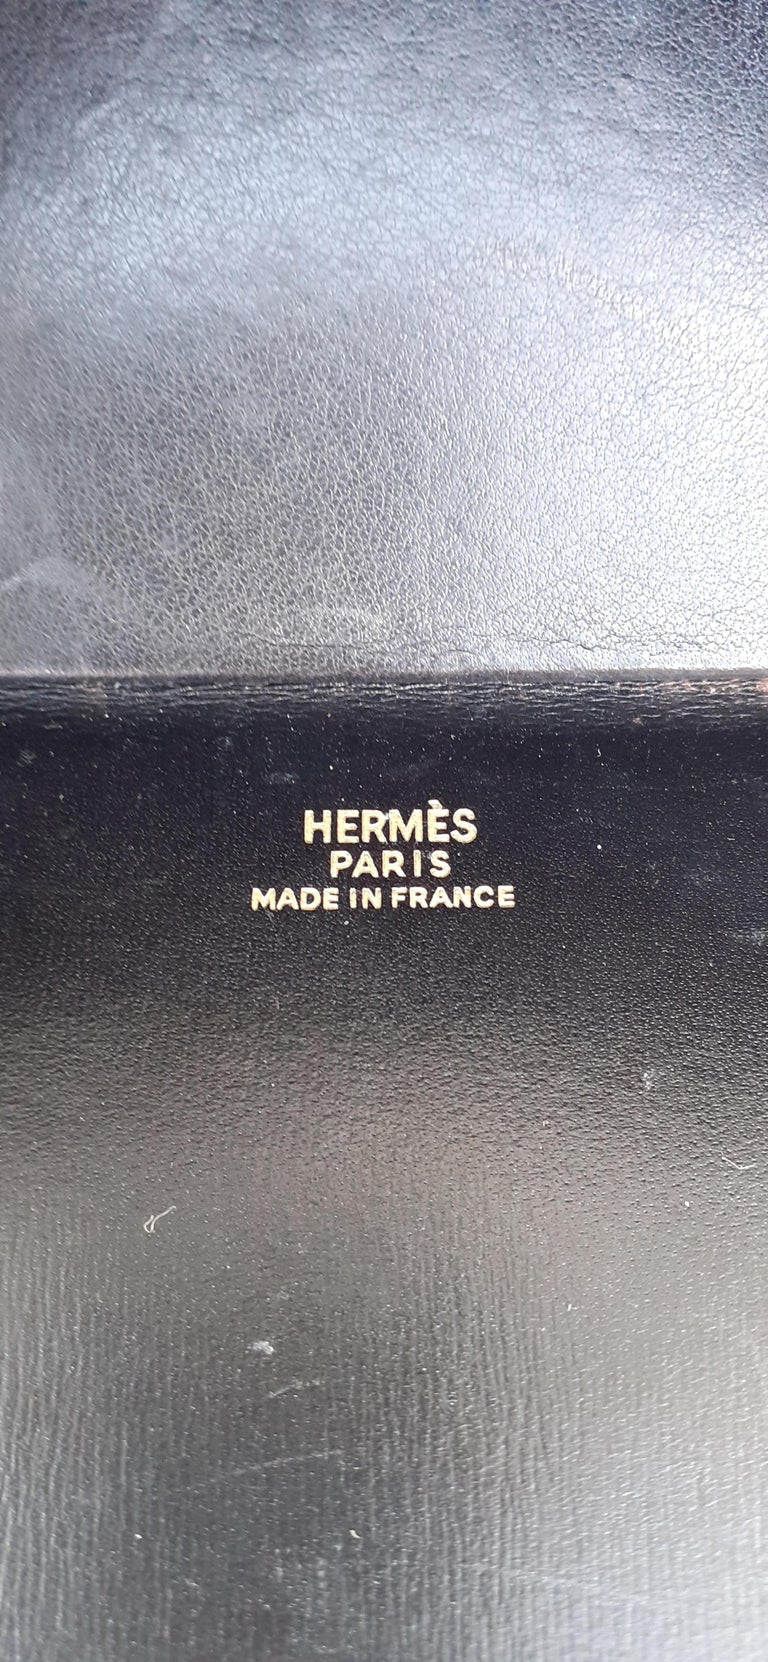 Exceptional Hermès Vintage Tee Time Bag Minaudiere Black Box Leather Ghw RARE For Sale 12